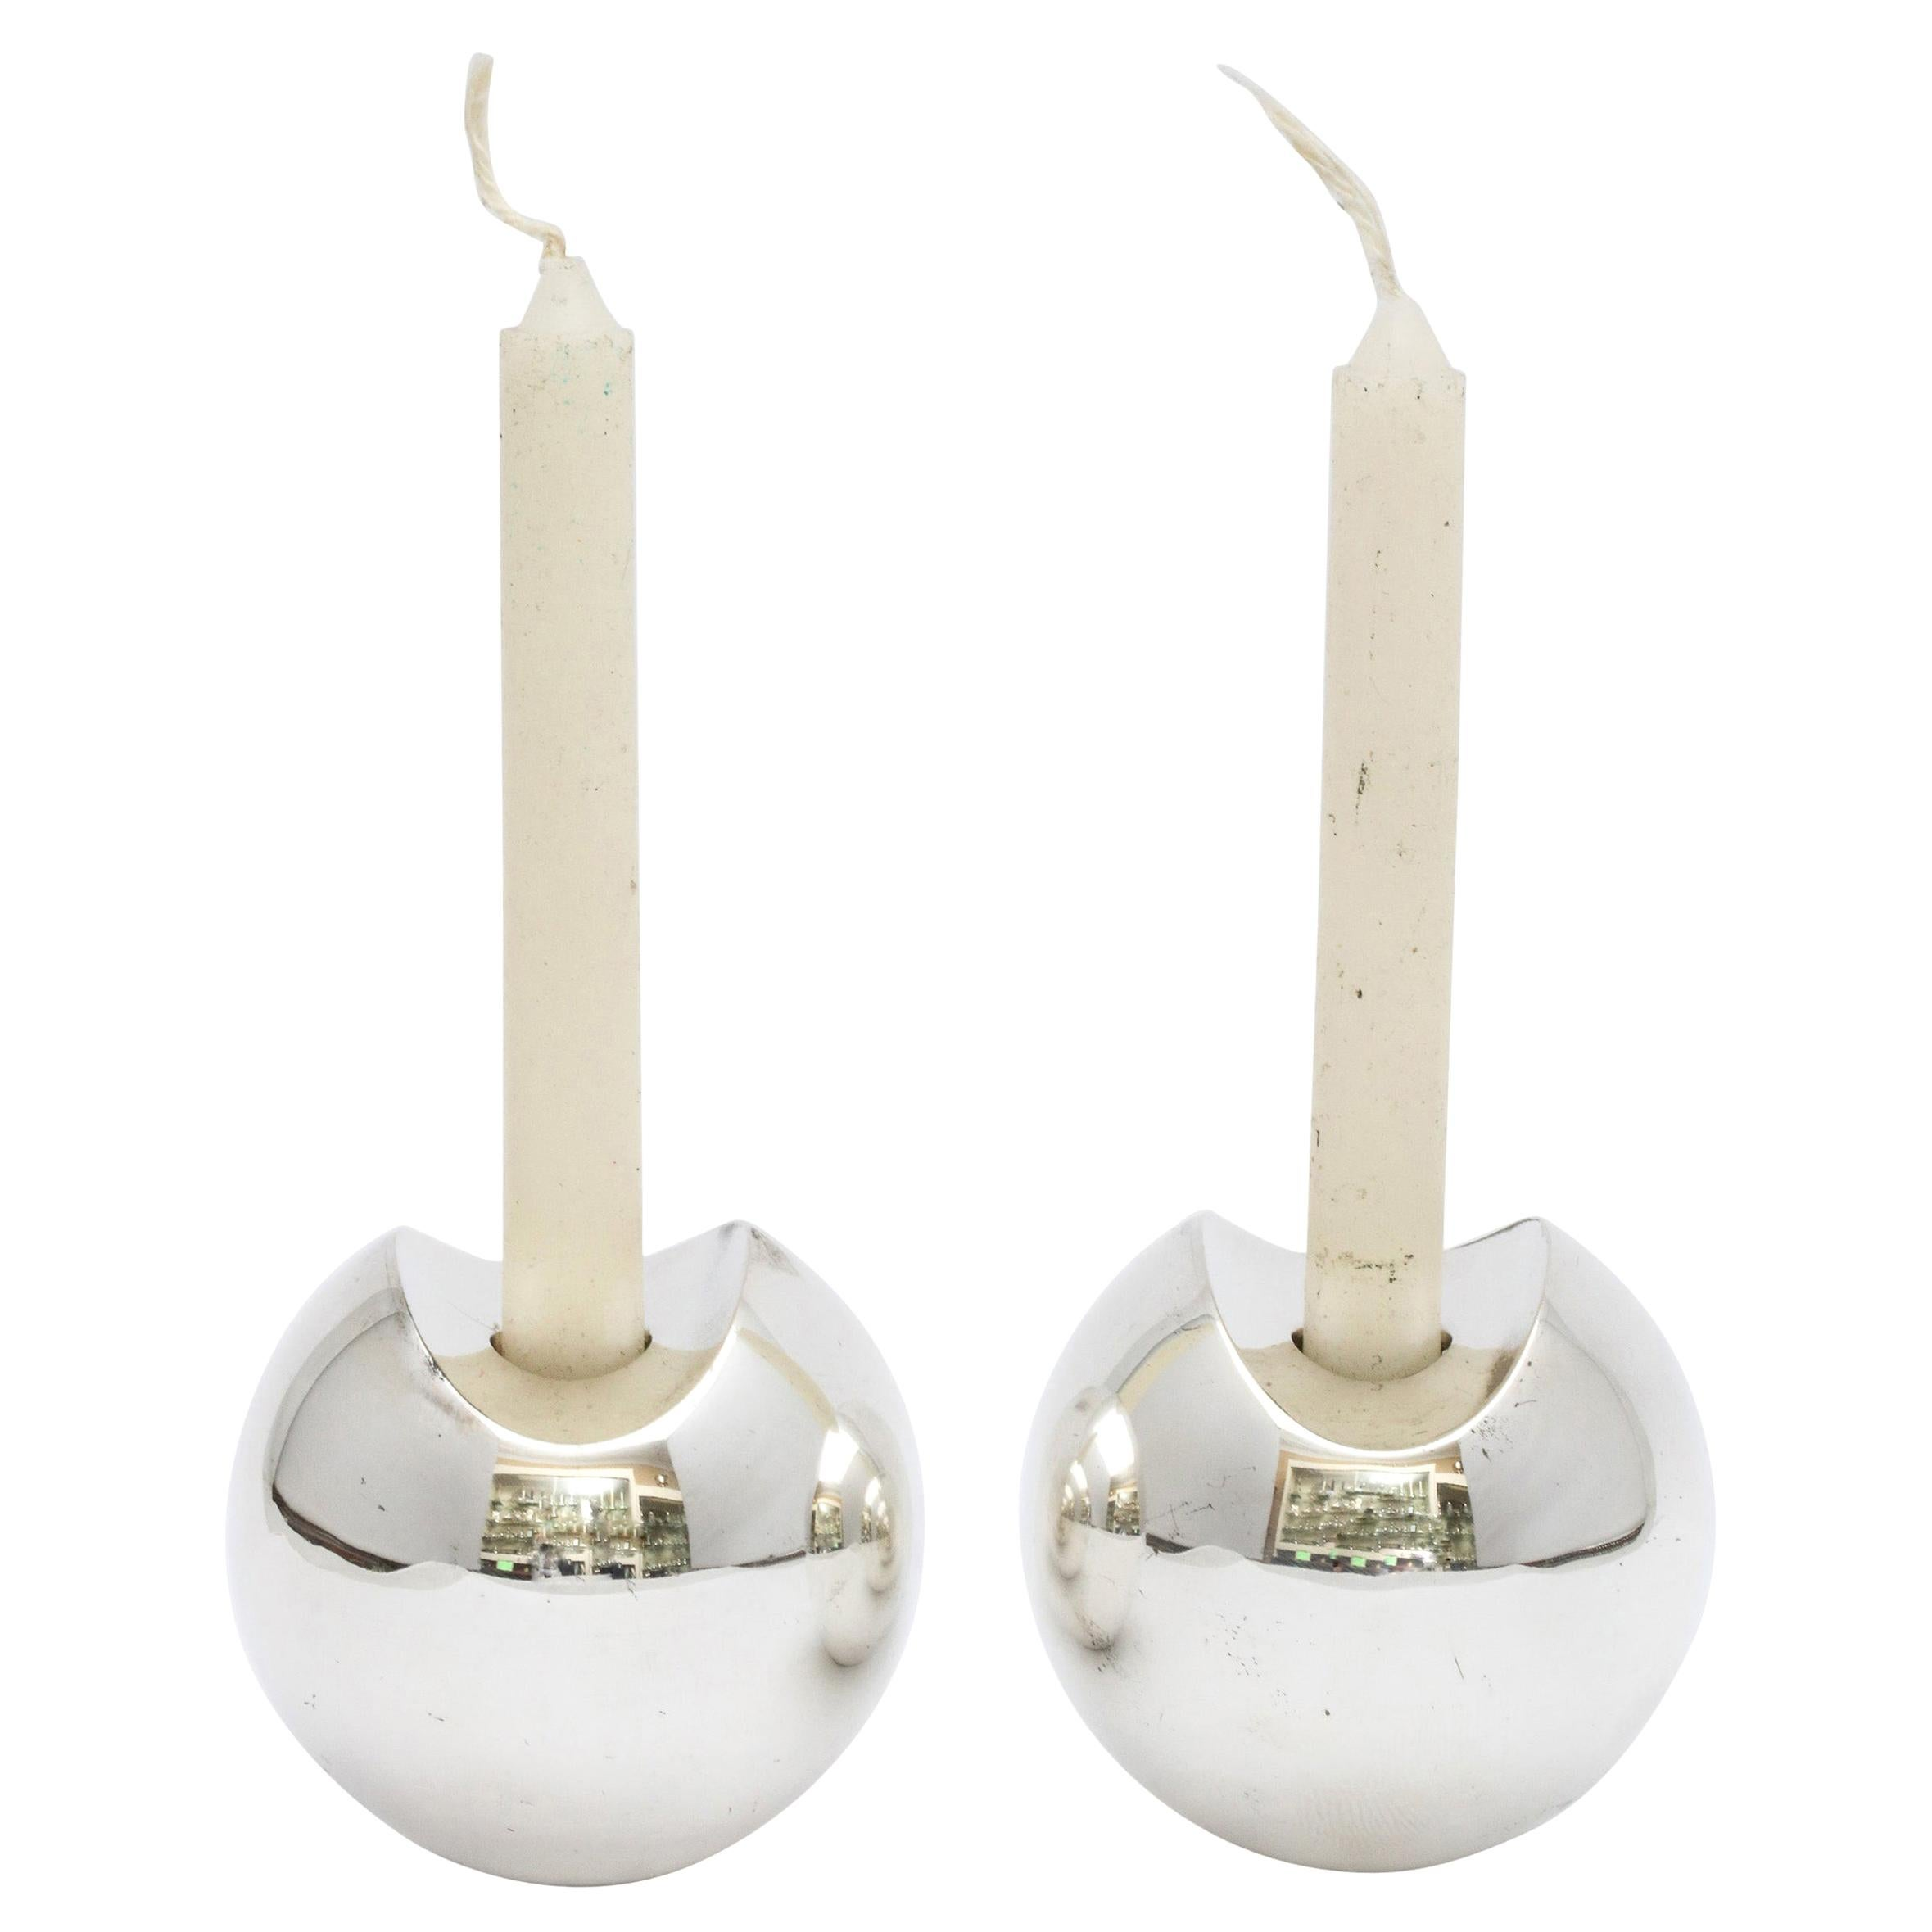 Pair of Sterling Silver Mid-Century Modern Candlesticks by Timo Sarpeneva